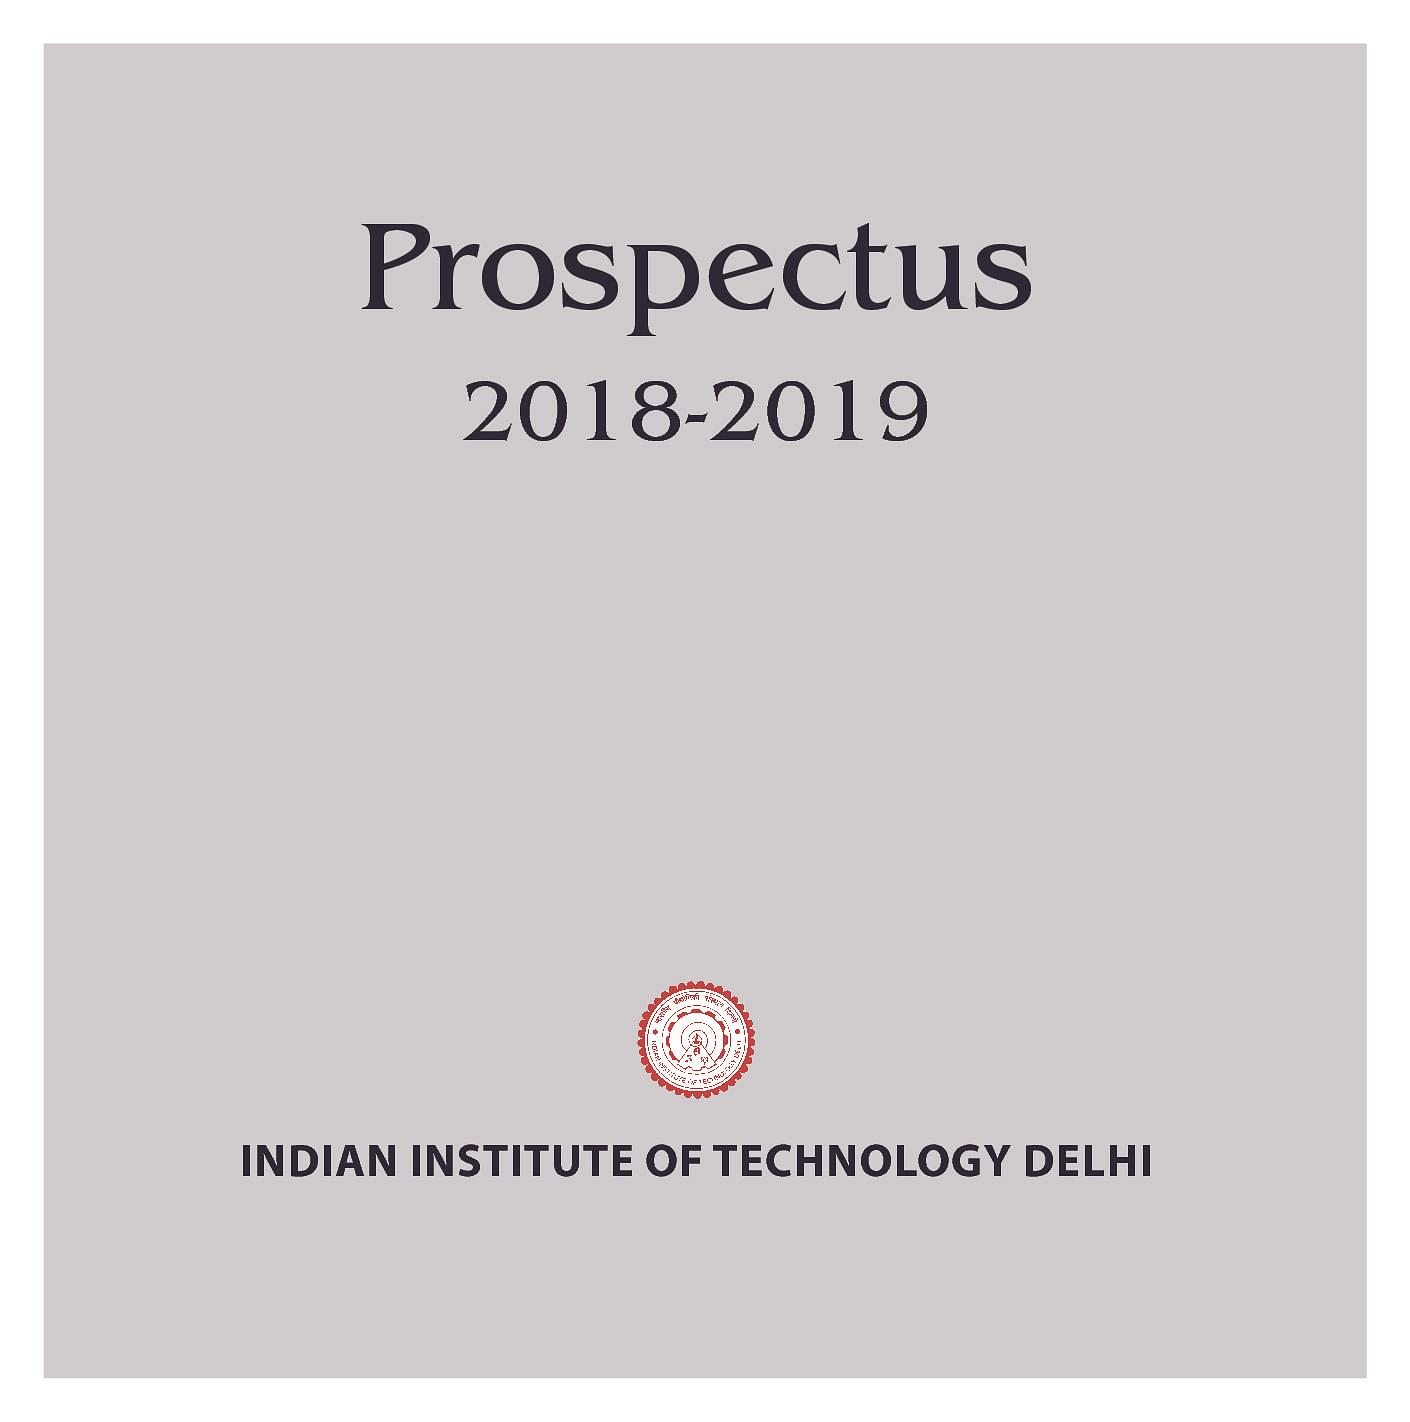 IIT Delhi - Courses, Fees, Admission, Placement, Cutoff